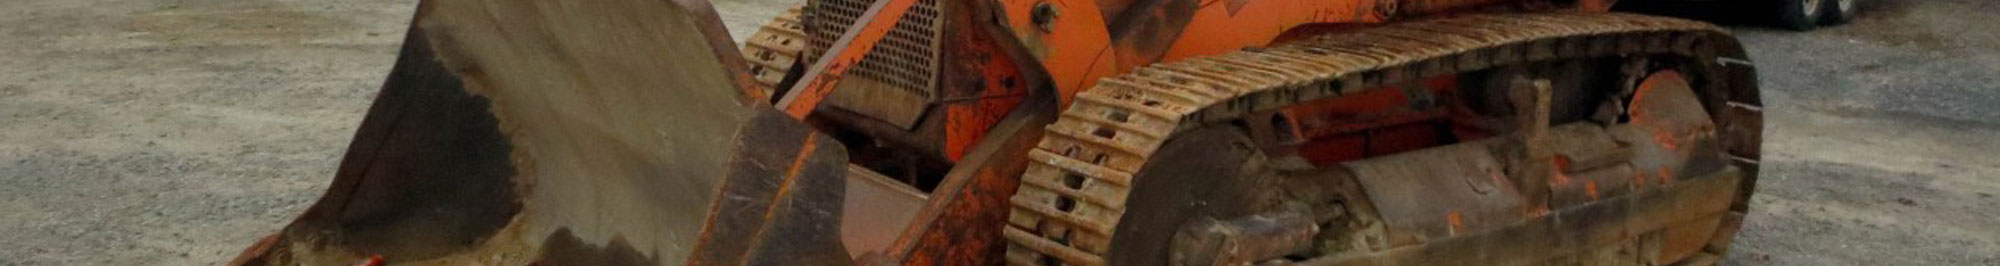 Fiat Allis Track Loader Final Drives